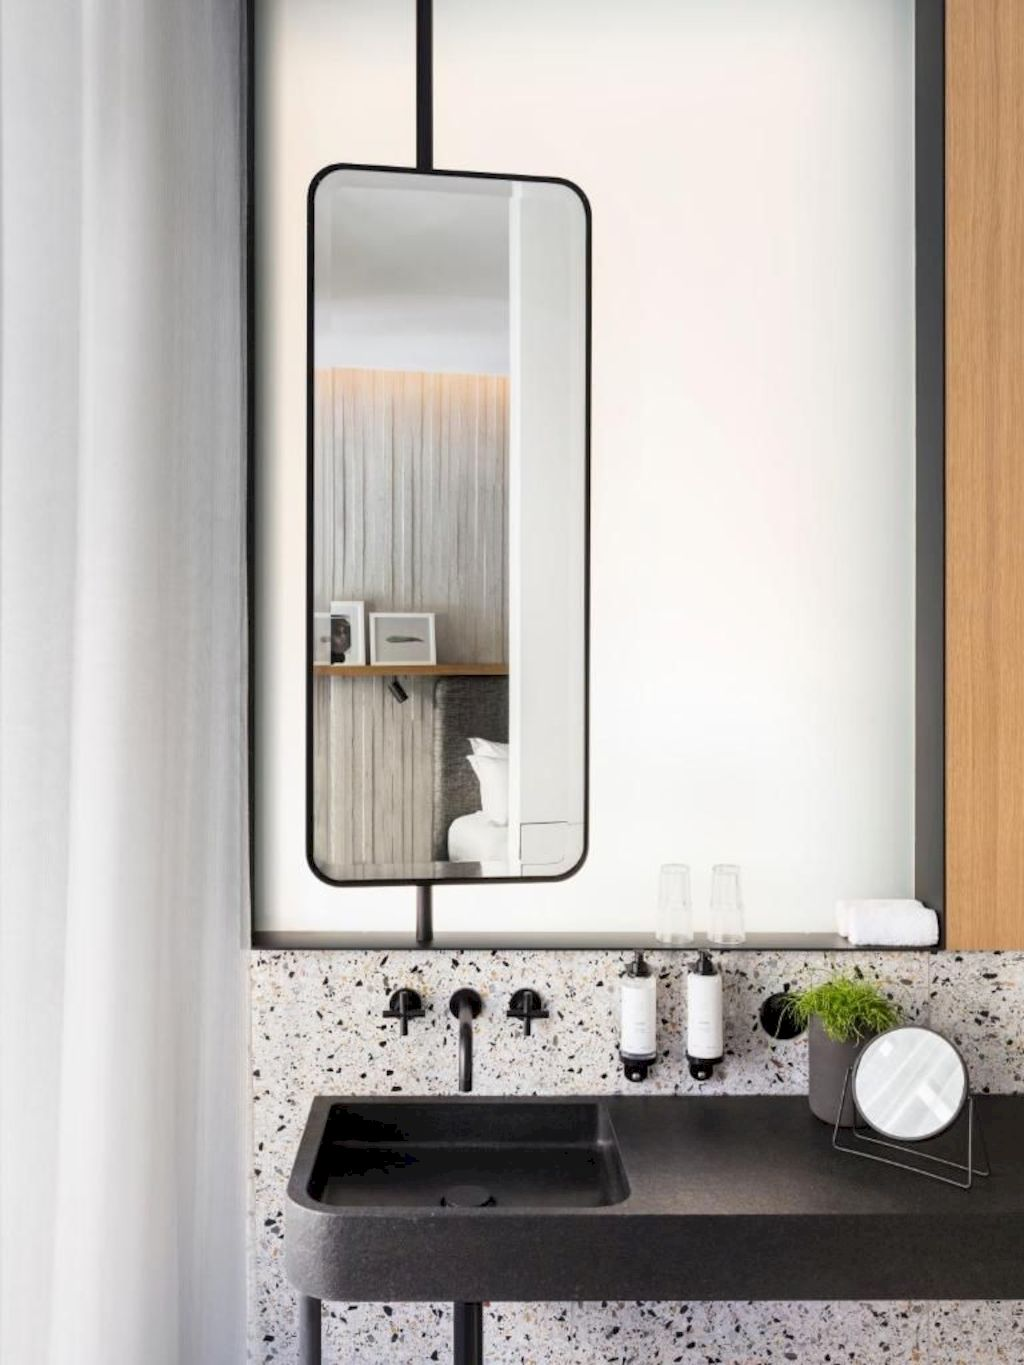 Terrazzo tiles used in bathroom renovation showing classical comeback that bring an artistic retro statement in your home Image 37